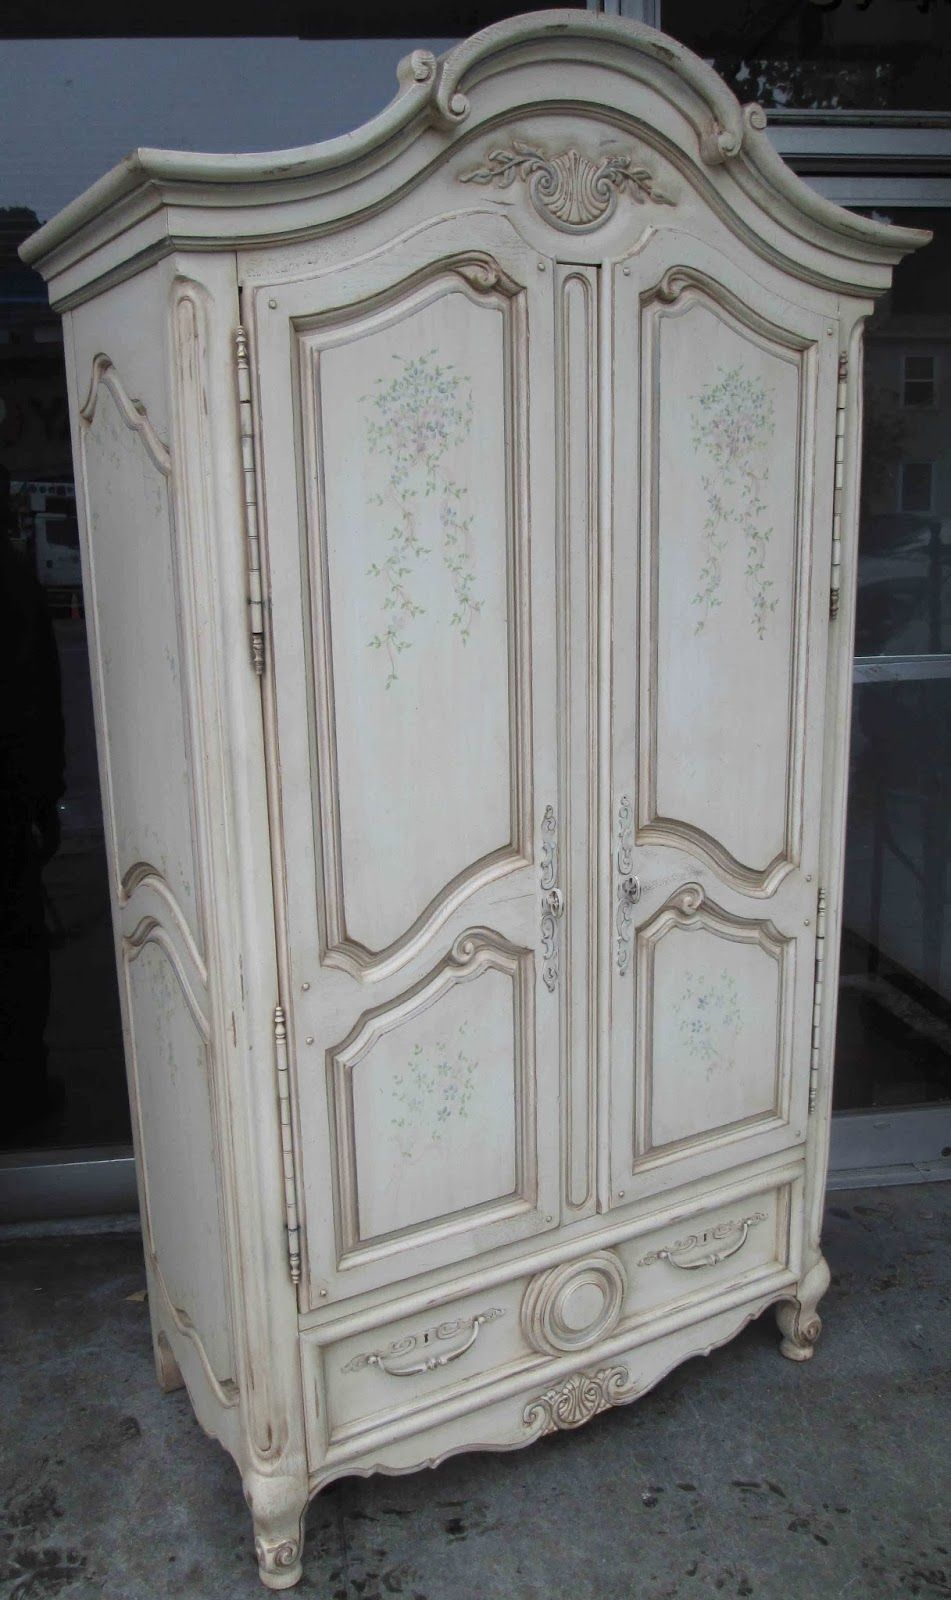 UHURU FURNITURE U0026 COLLECTIBLES: Thomasville French Provincial Armoire   $140